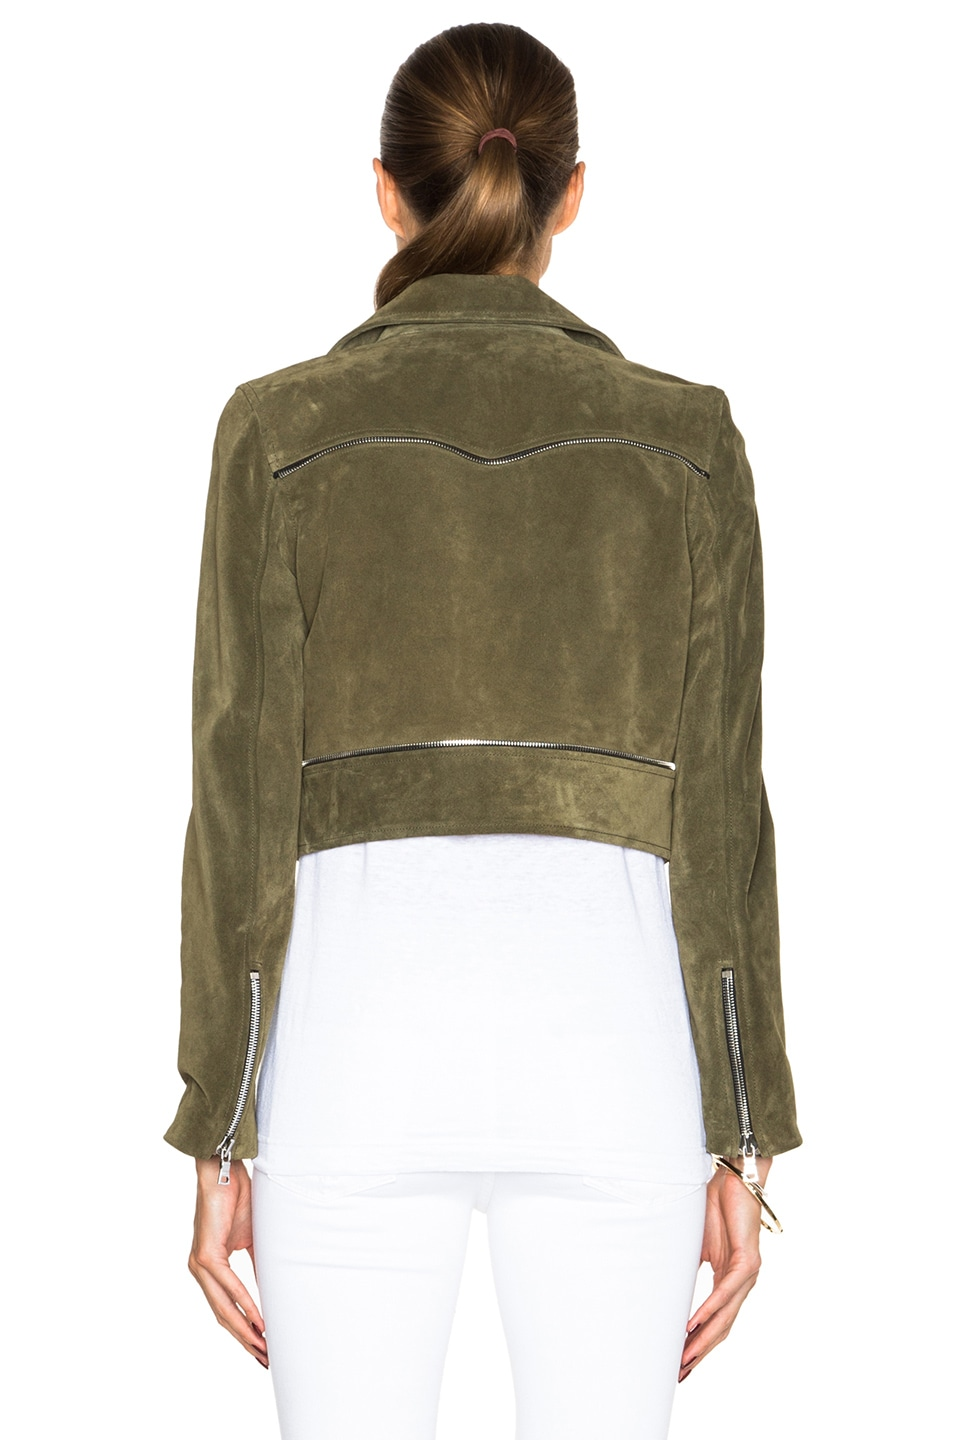 Image 5 of ThePerfext Brooklyn Suede Jacket in Army Green